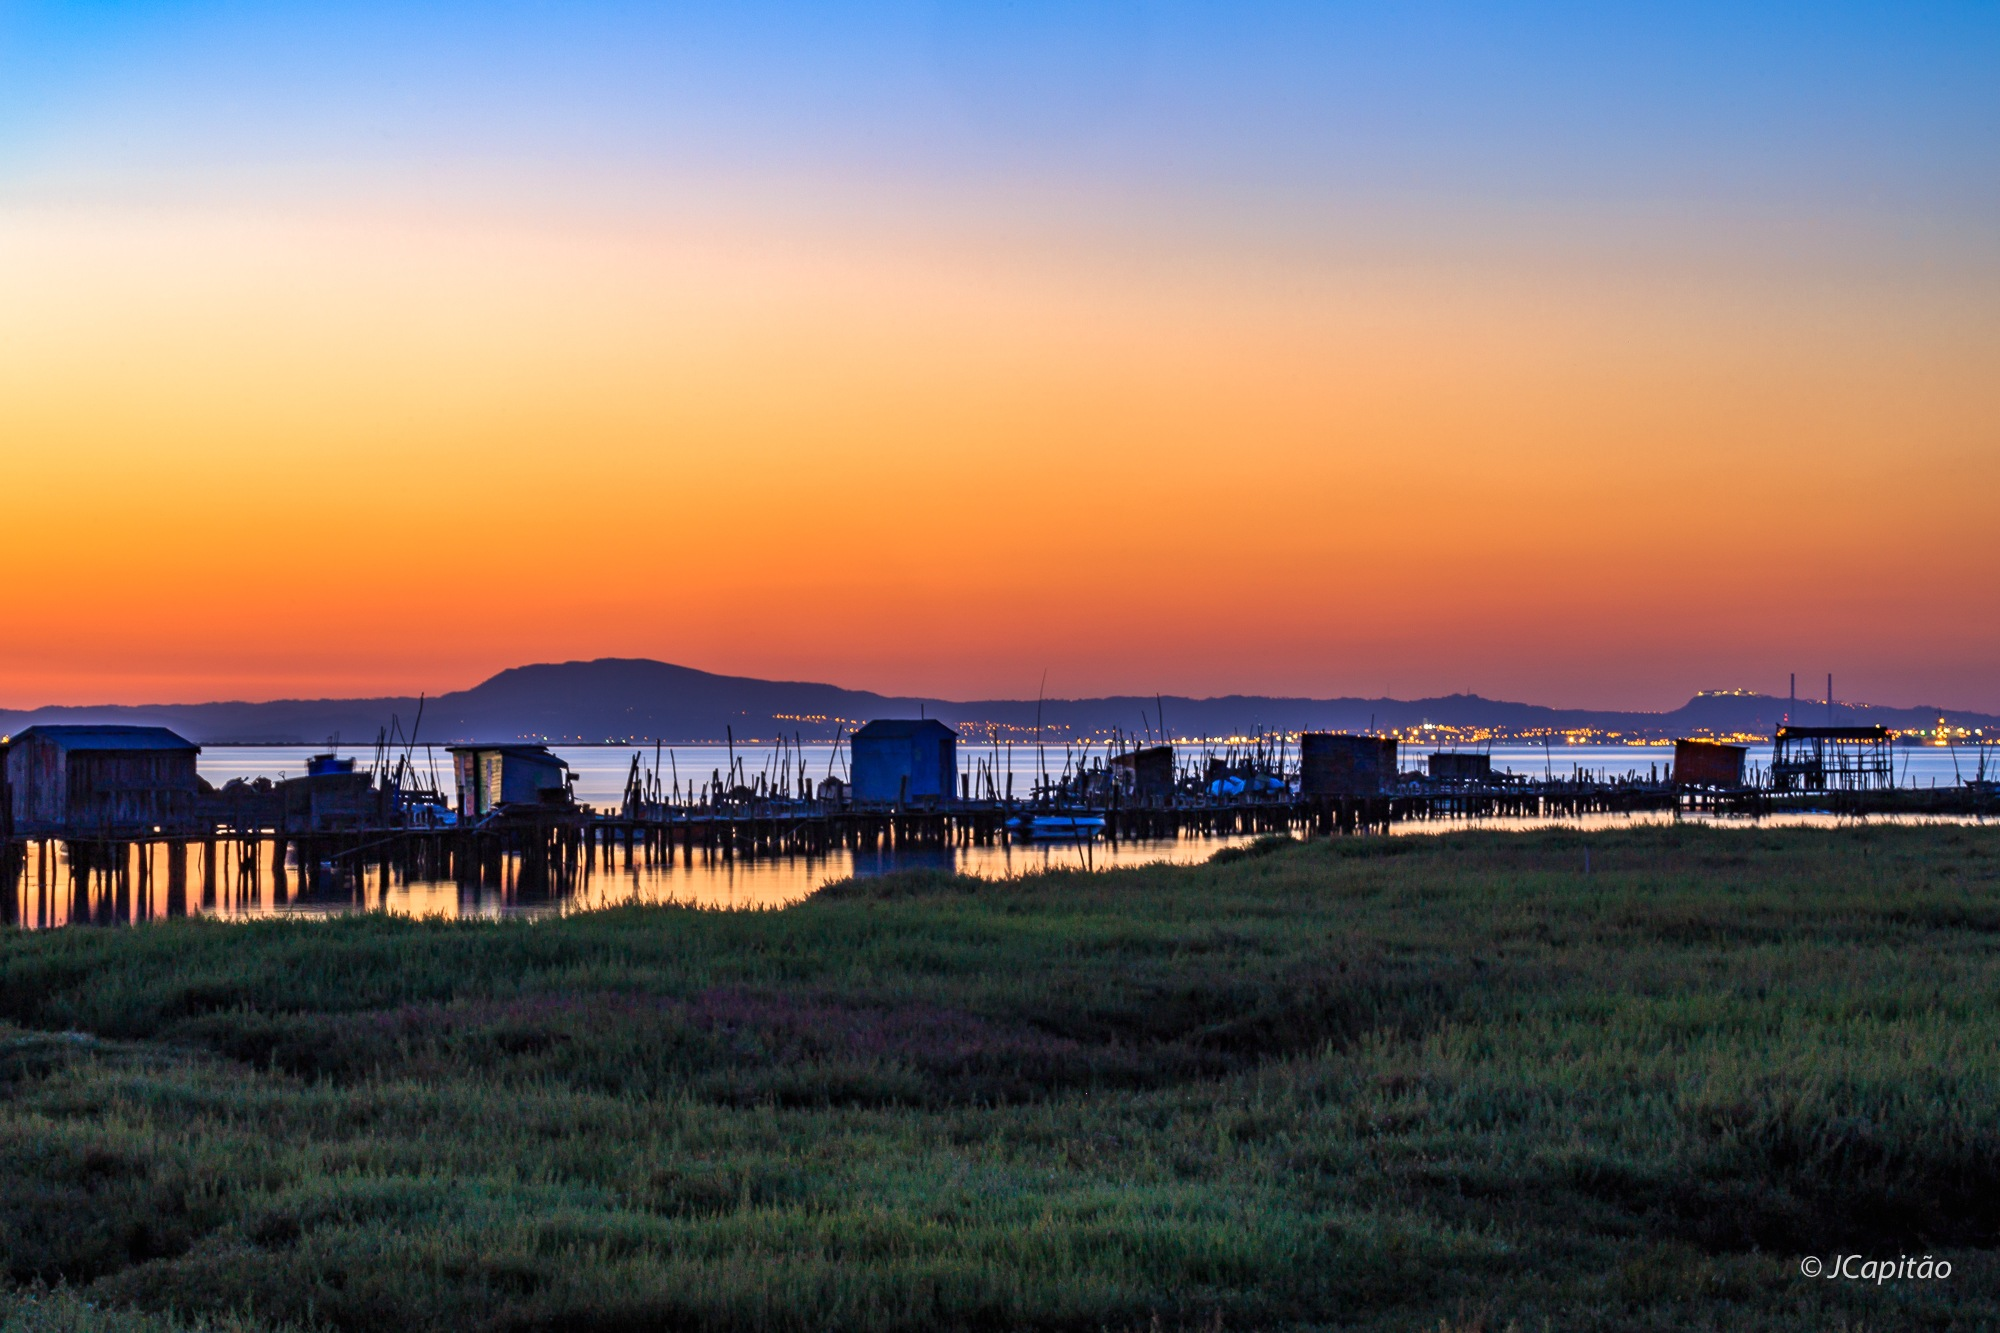 Carrasqueira after sunset by Joaquim Capitao